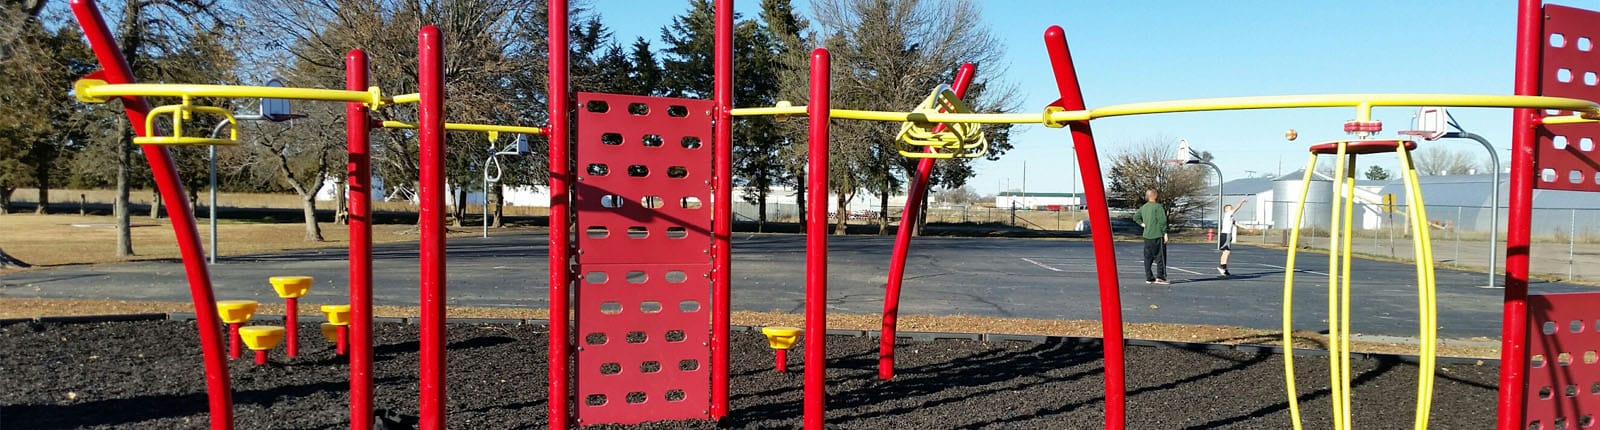 Modular Play Playground Equipment | Sterling West